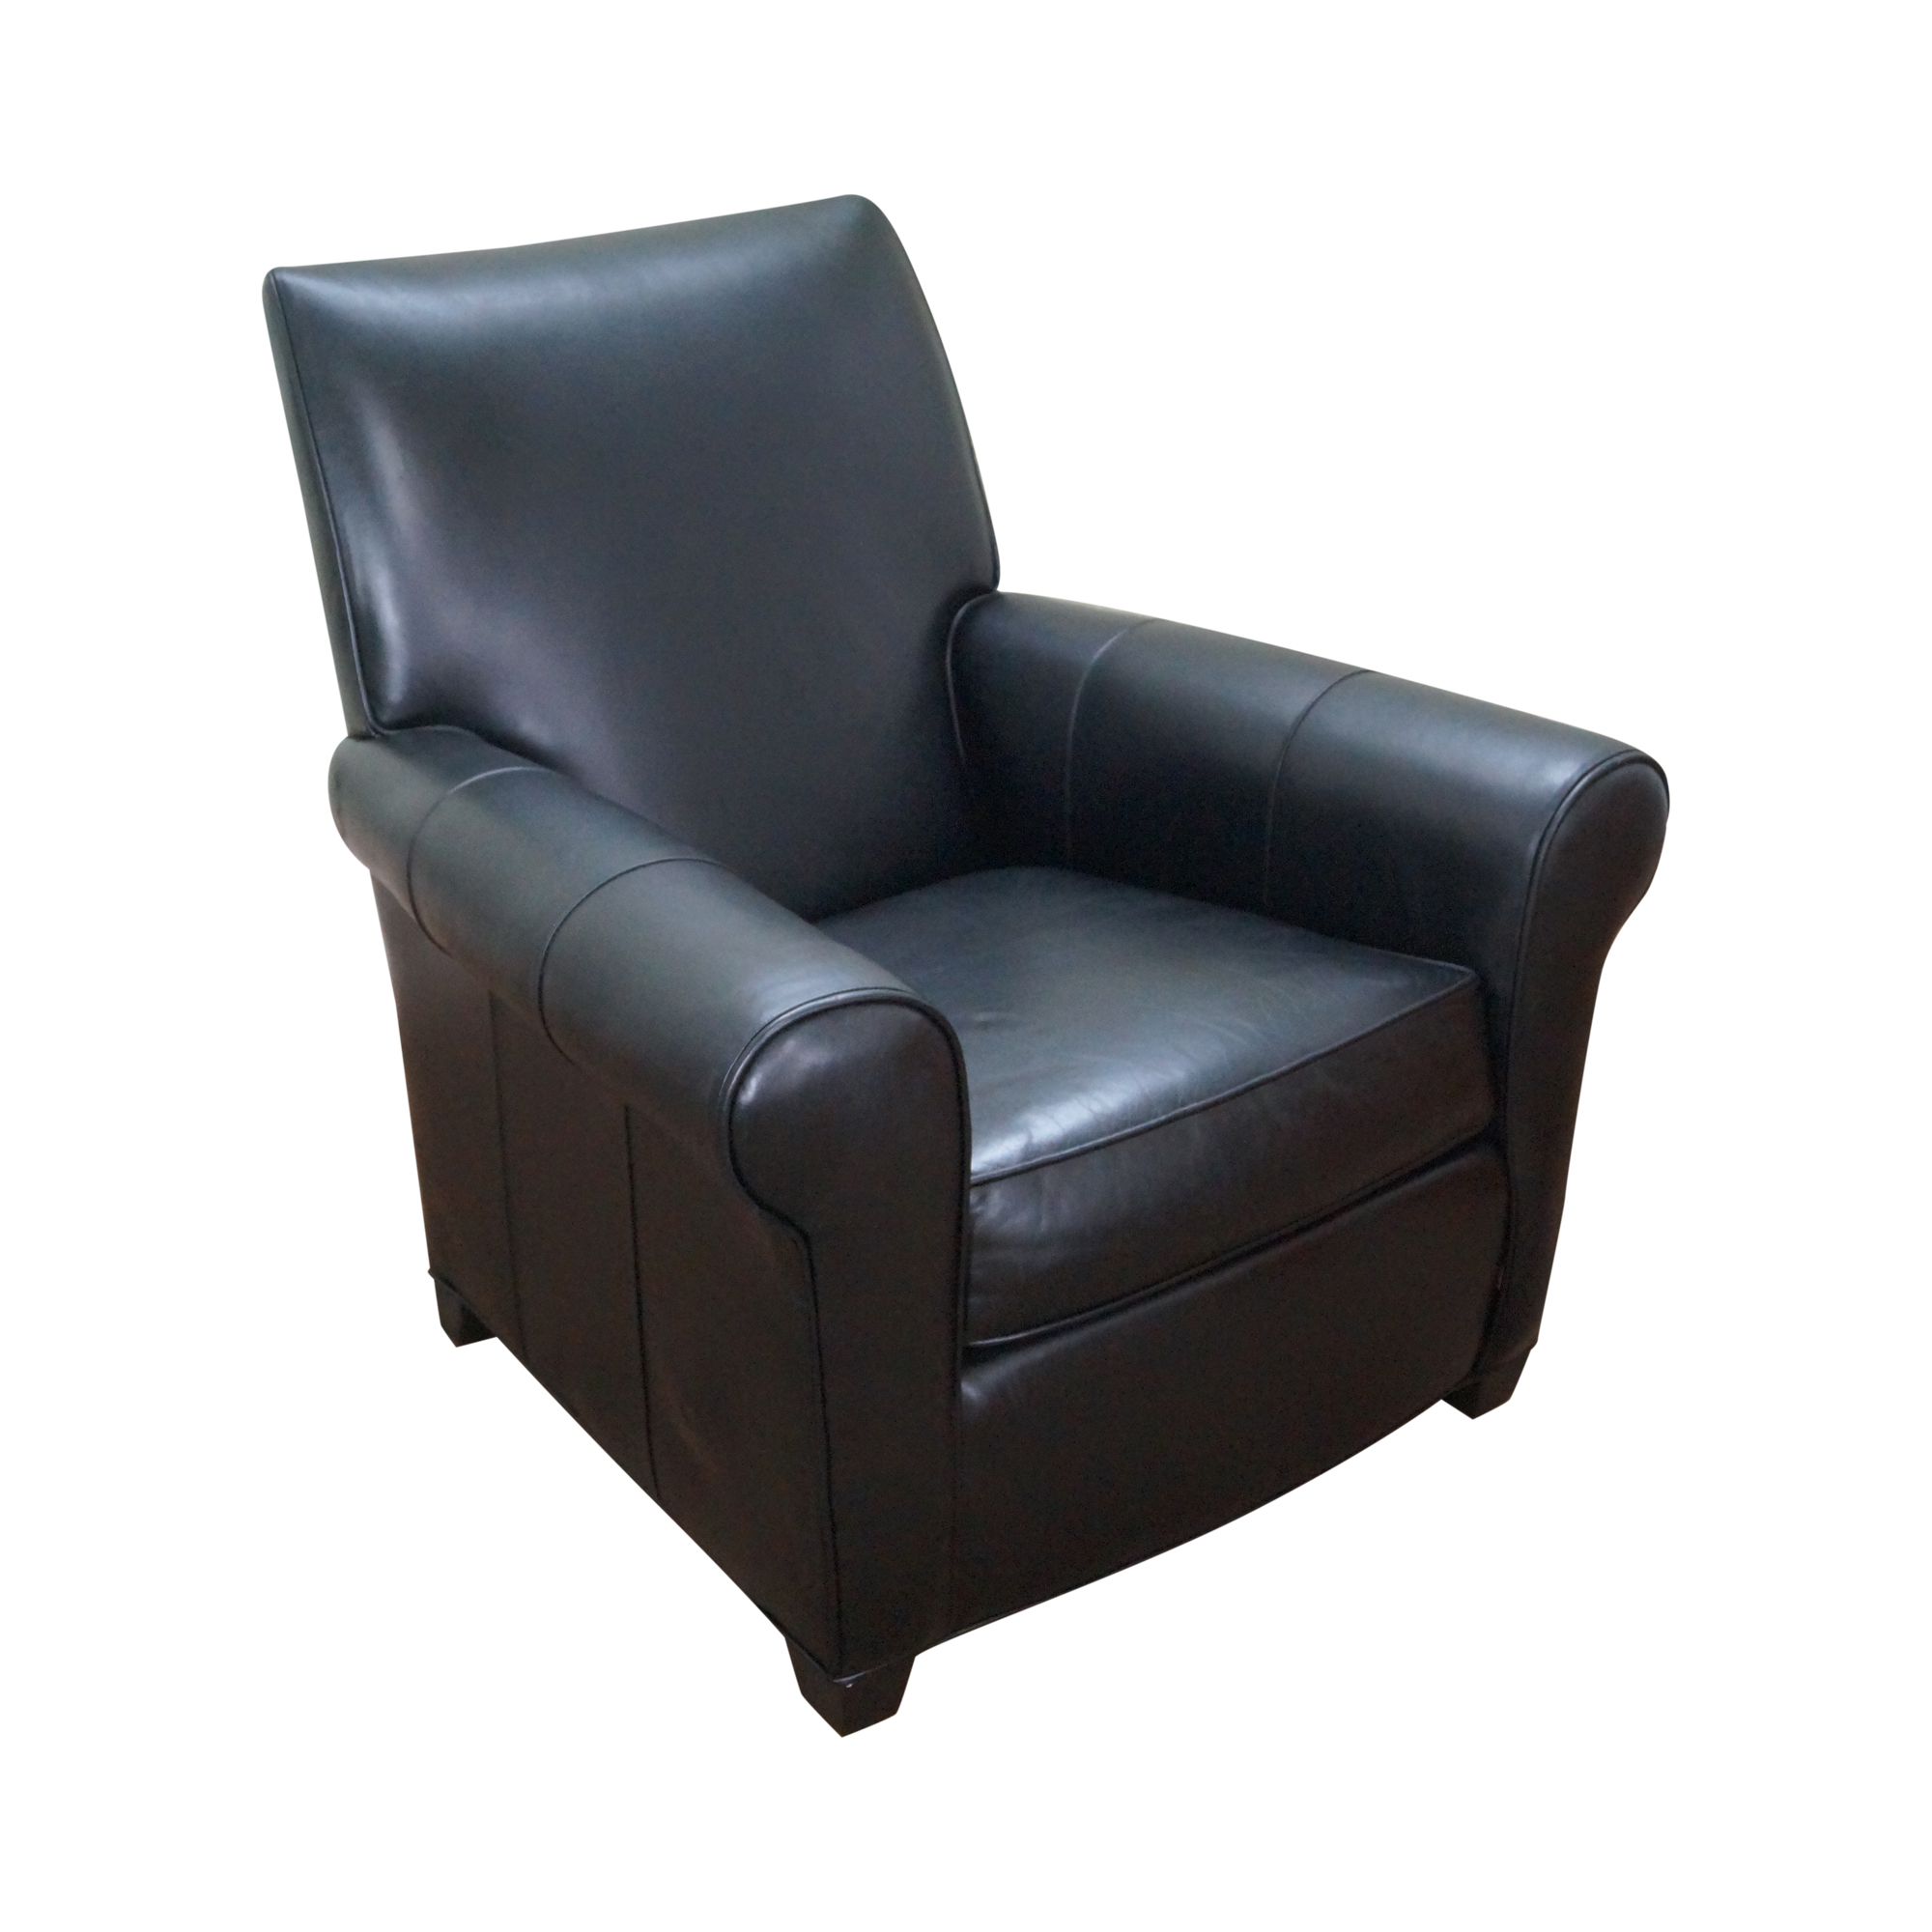 Living Room Lounge Chairs Ethan Allen Black Leather Living Room Lounge Chair Chairish